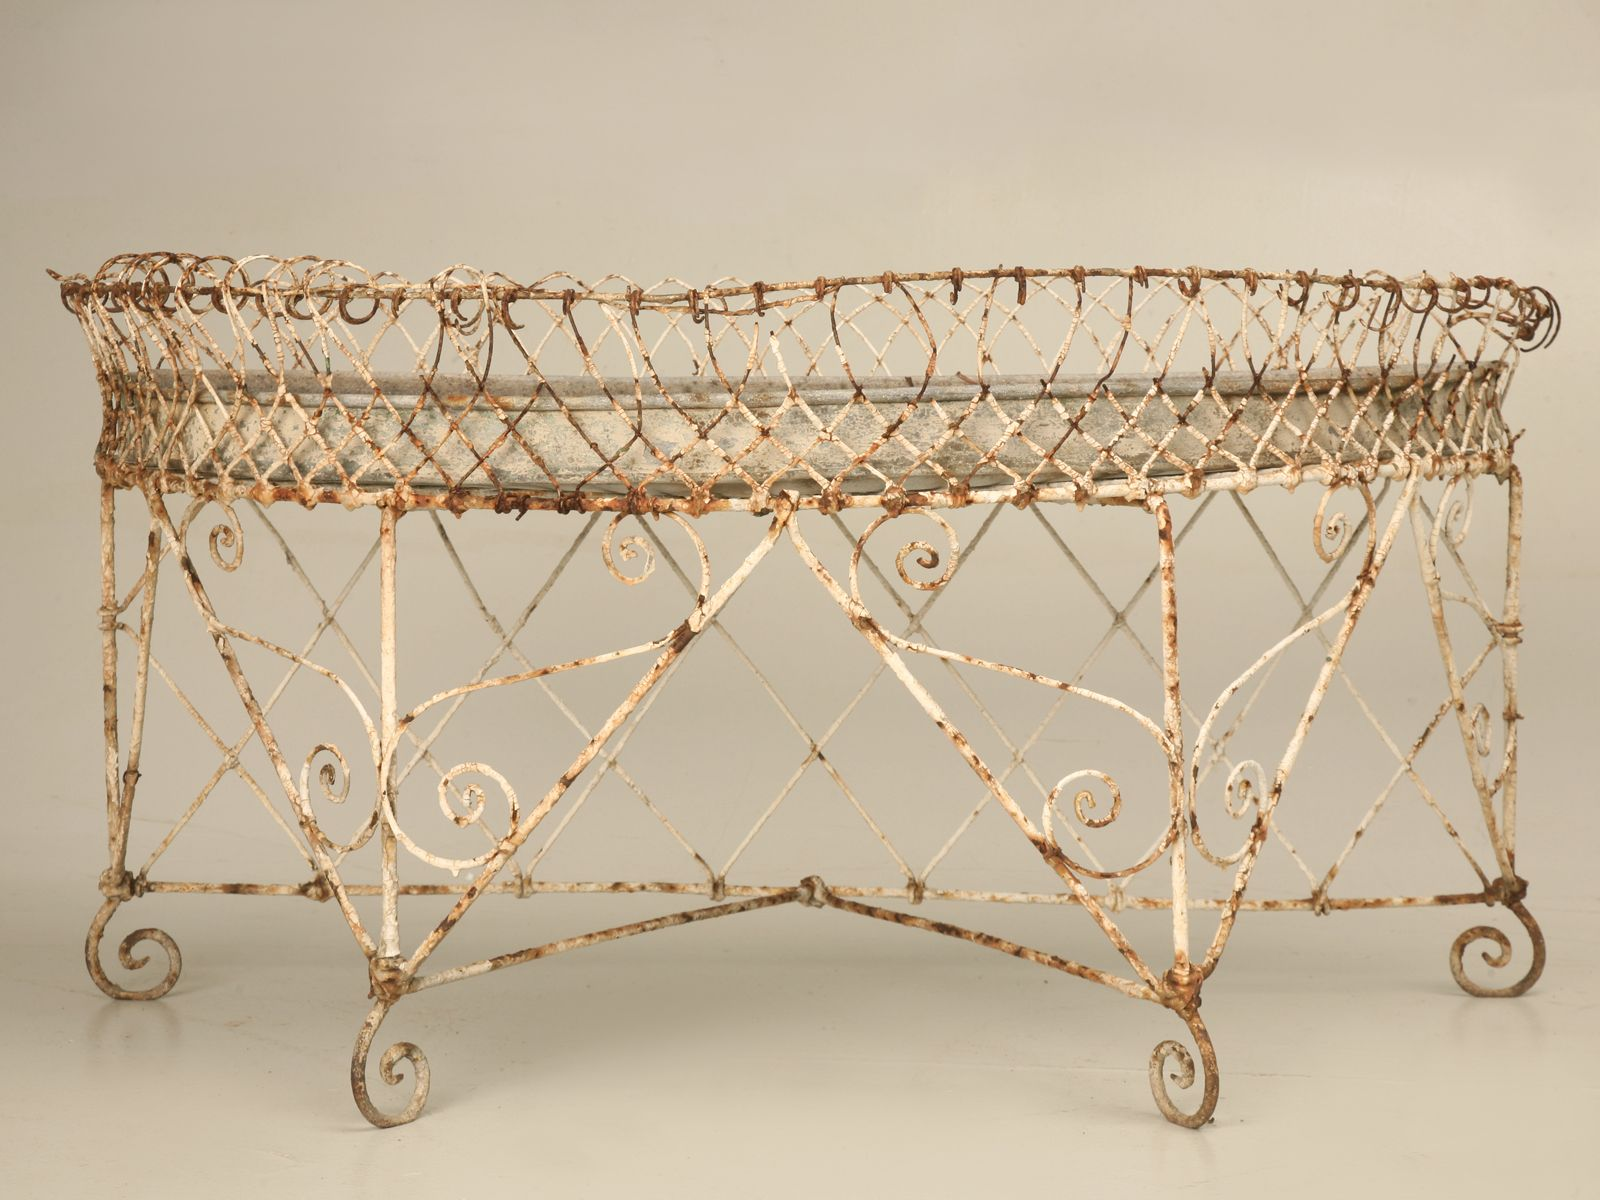 Vintage French Metal Wire Planter I Would Love This Piece In My